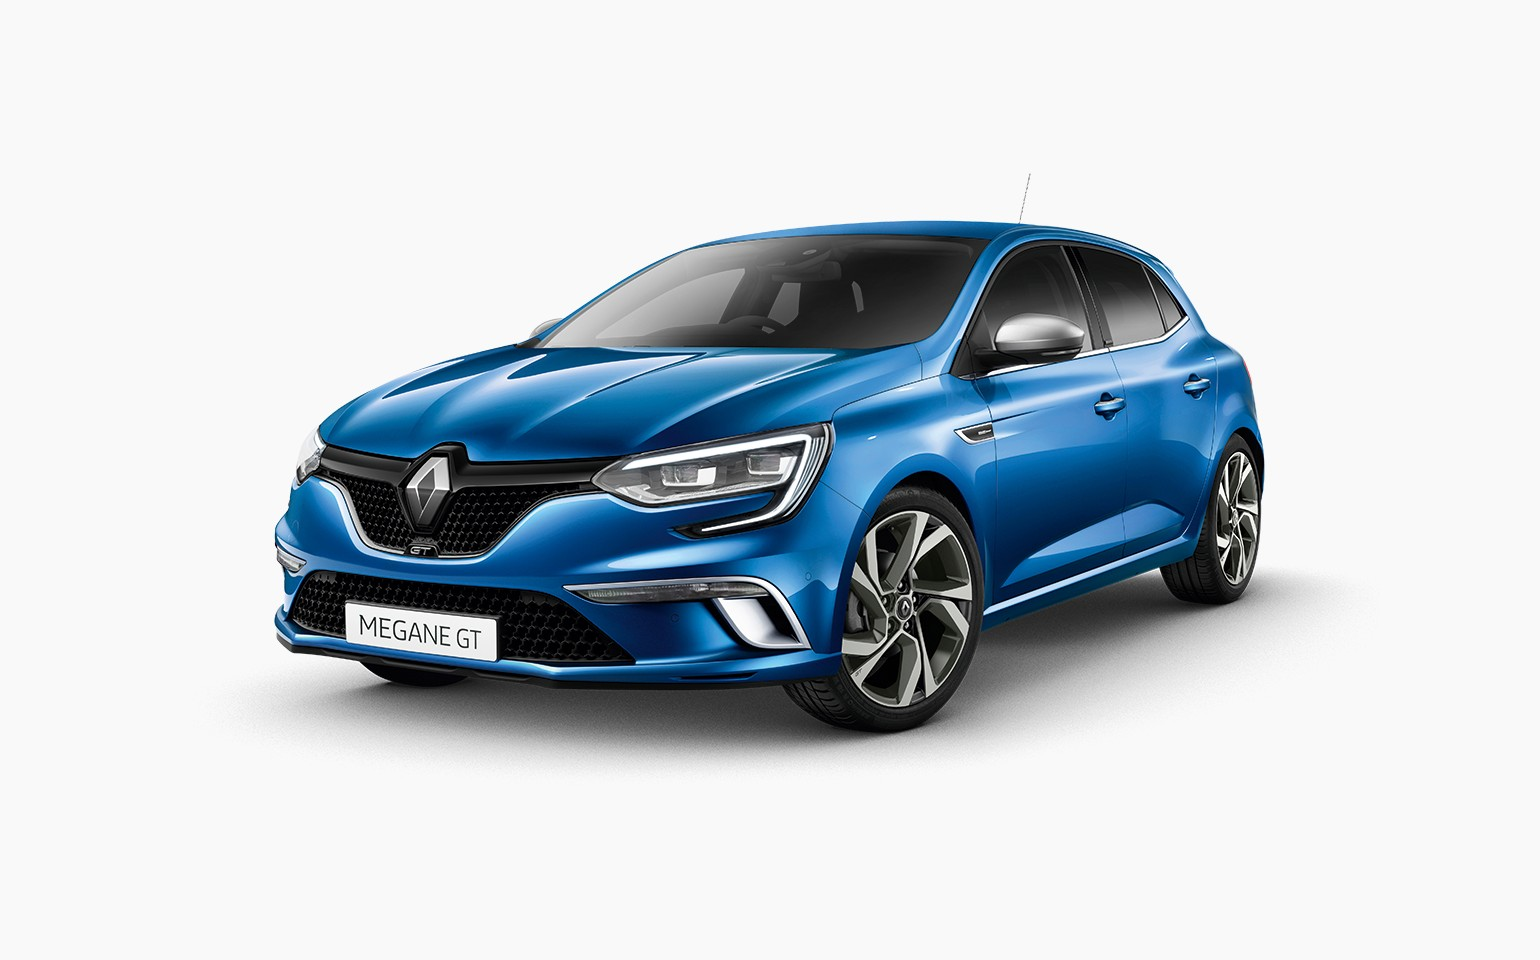 Motoring Malaysia The All New Renault Megane Gt To Be Displayed At